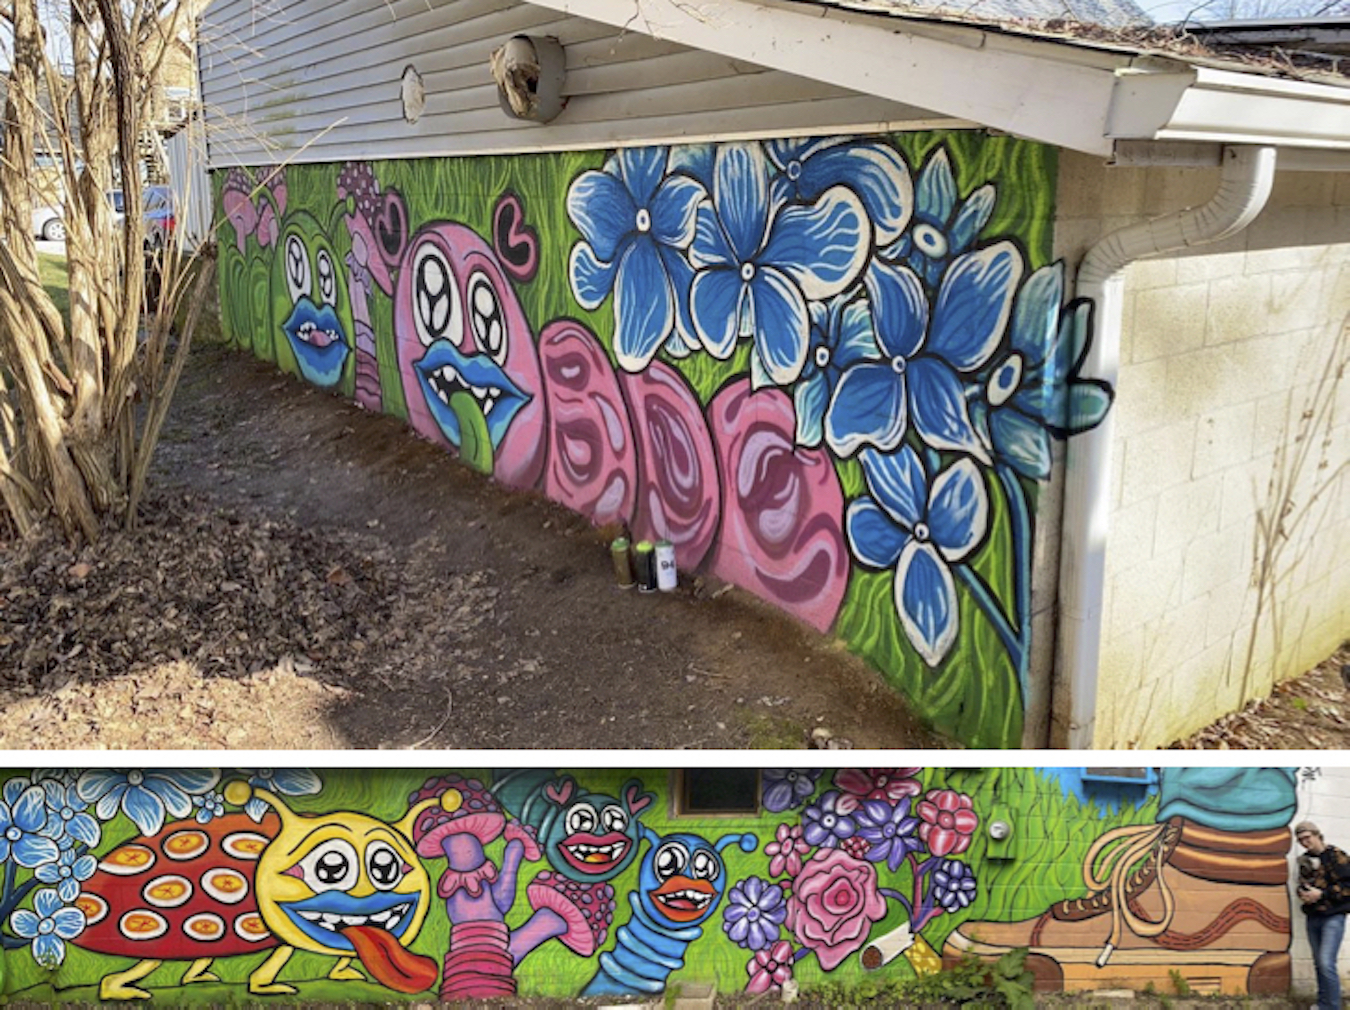 """Artist Trenton Musch completed this mural in May 2020 at Artisan Alley's Twisted Cowork location at 804 W. Kirkwood Ave. It is one continuous piece, entitled """"Creatures Beneath Our Feet.""""   Courtesy photo"""